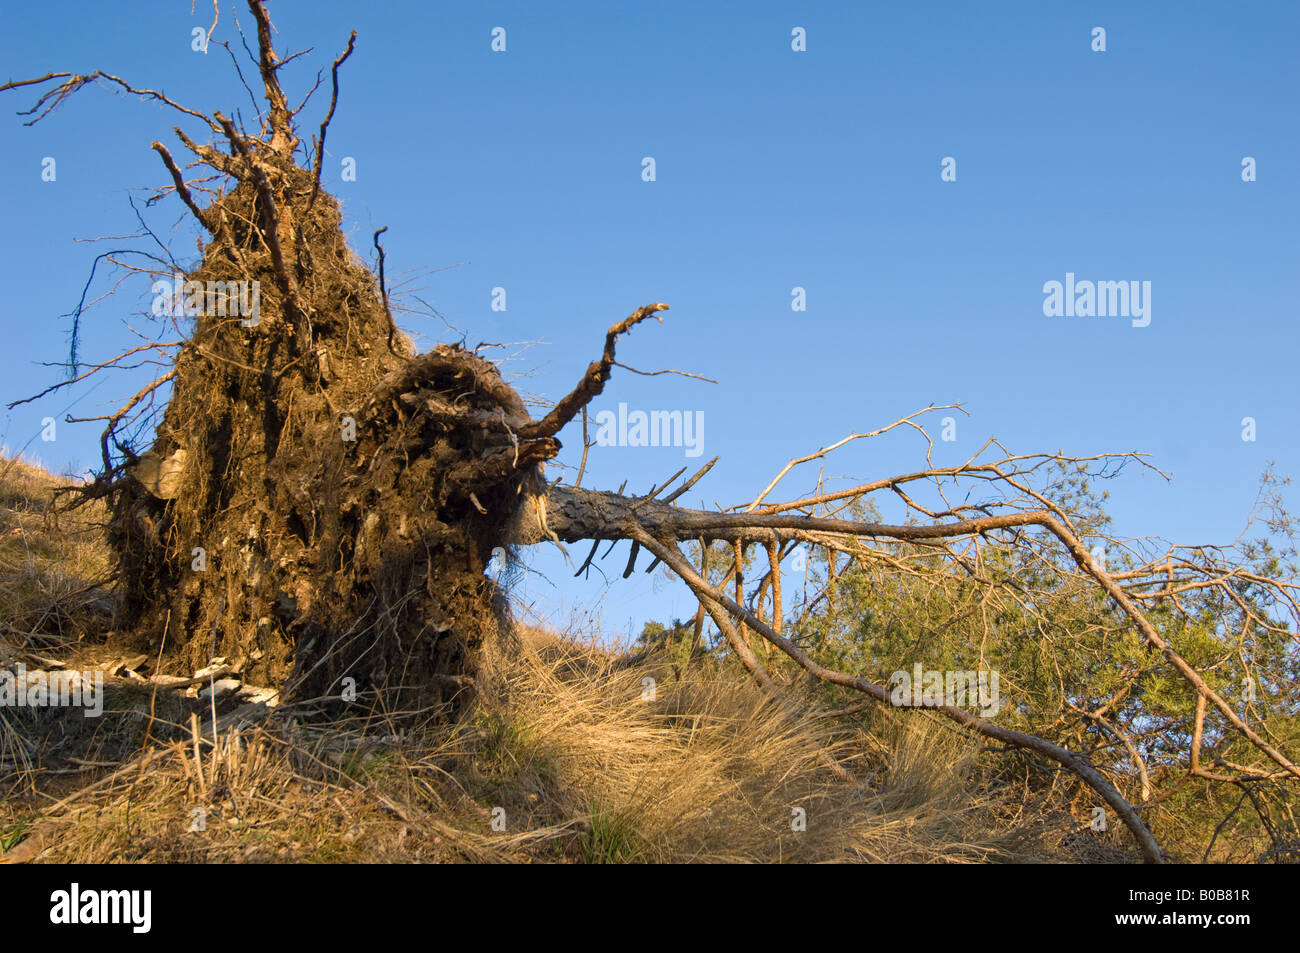 disroot disrooting disrooted TREE uproot uprooting uprooted roots - Stock Image